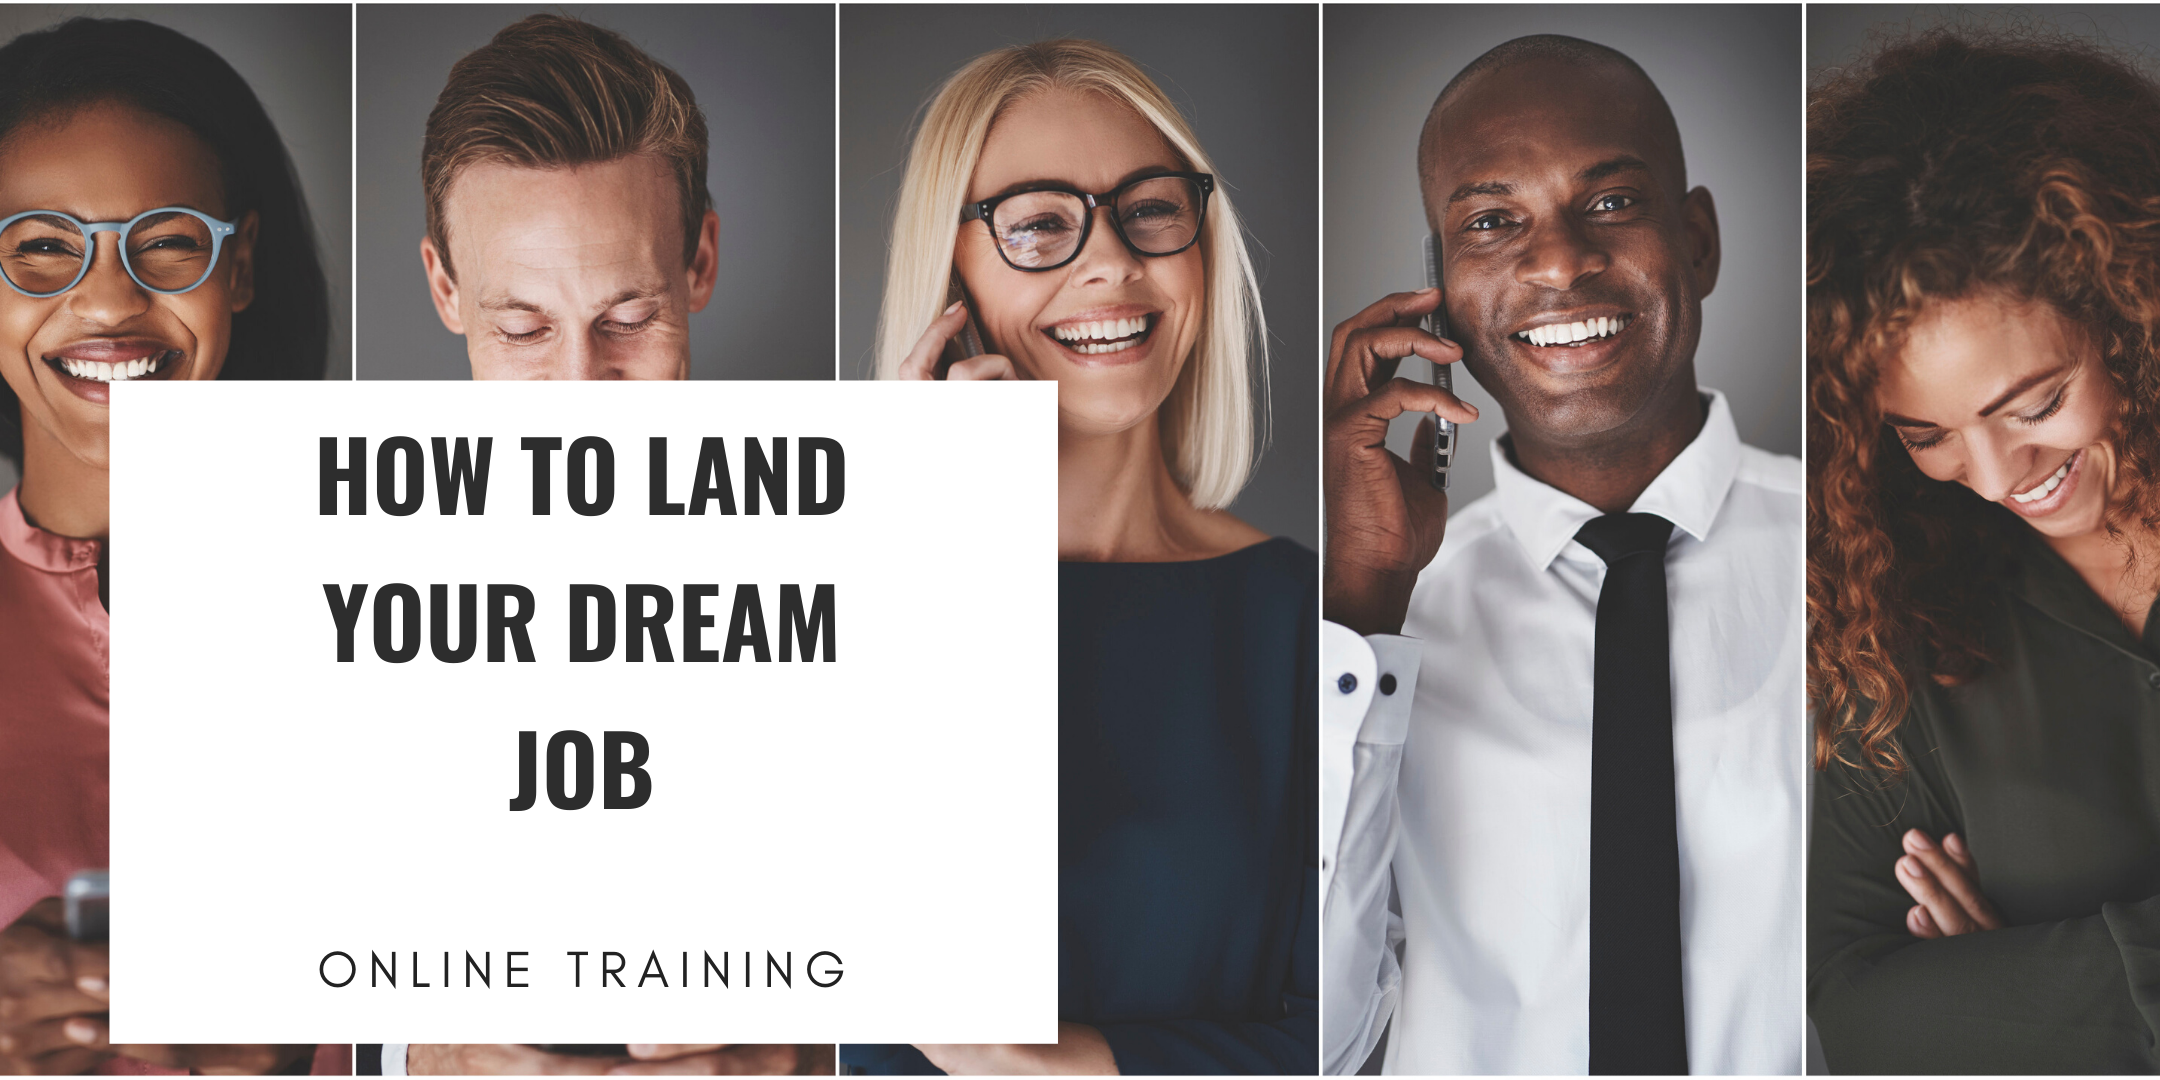 FREE TRAINING: HOW TO LAND YOUR DREAM JOB (CAREER WORKSHOP) San Diego, CA